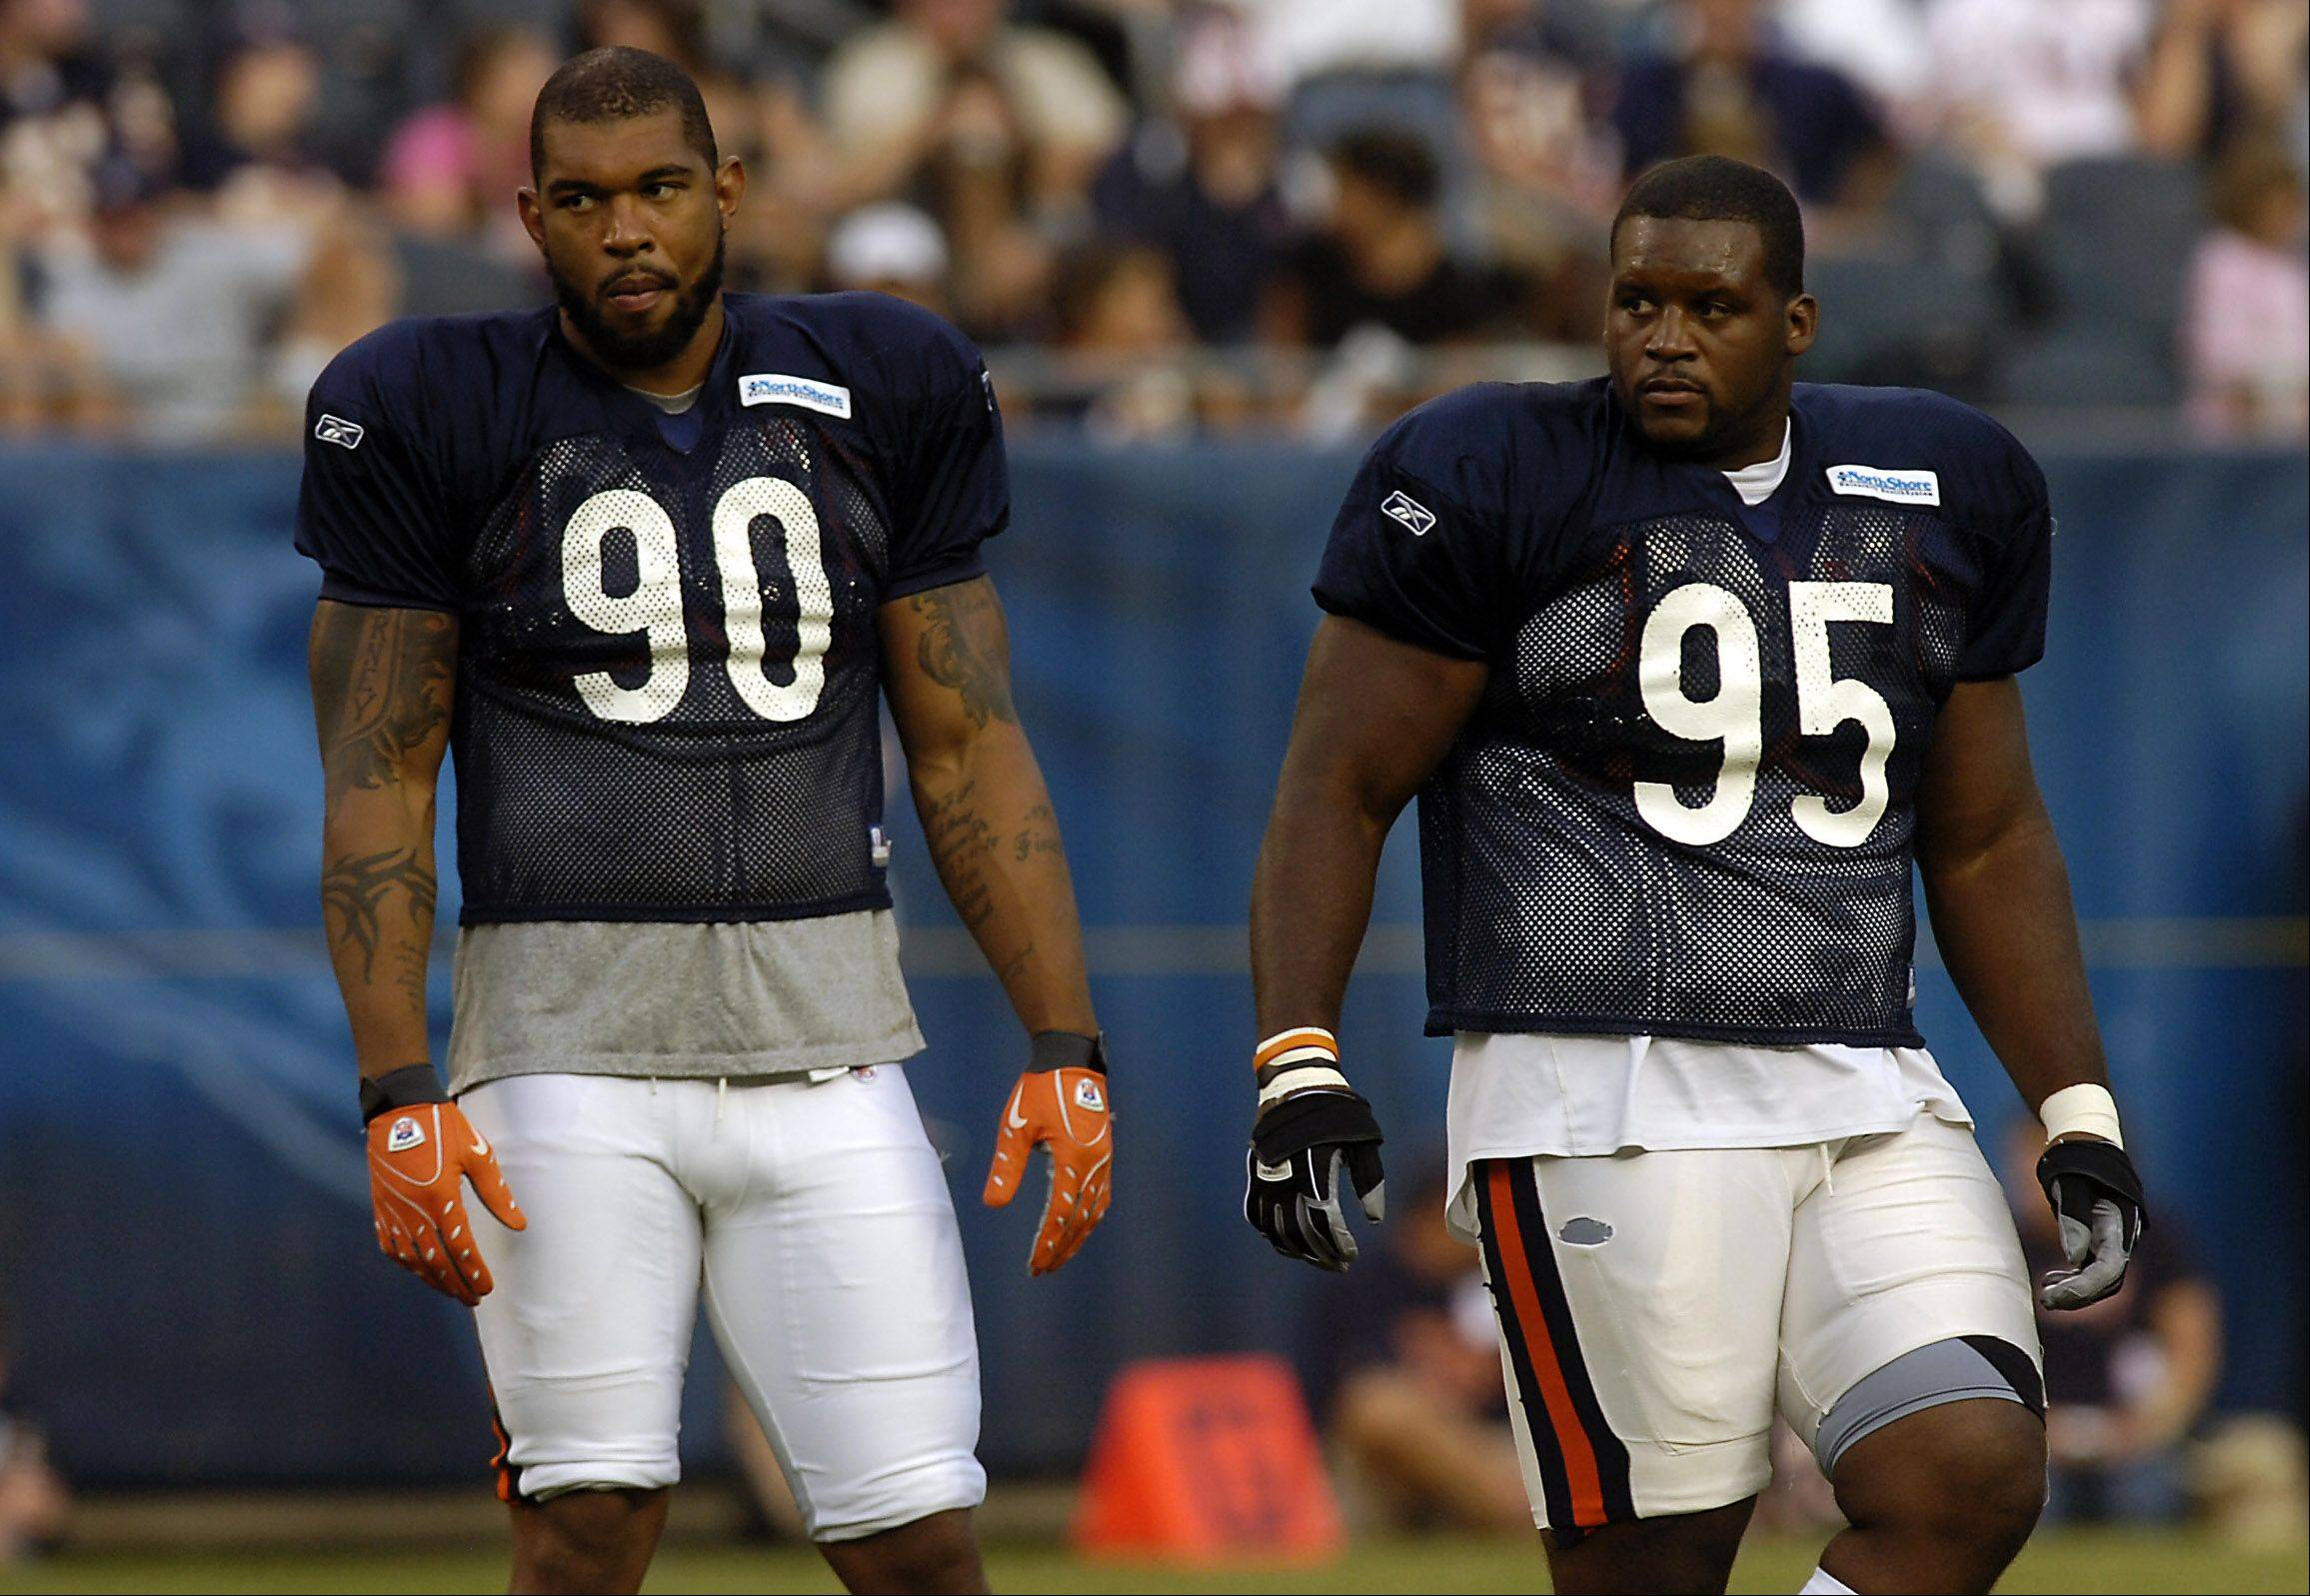 Bears defensive end Julius Peppers, left, will have tackle Anthony Adams on the defensive line again this season as Adams has signed a two-year deal to stay with the Bears.